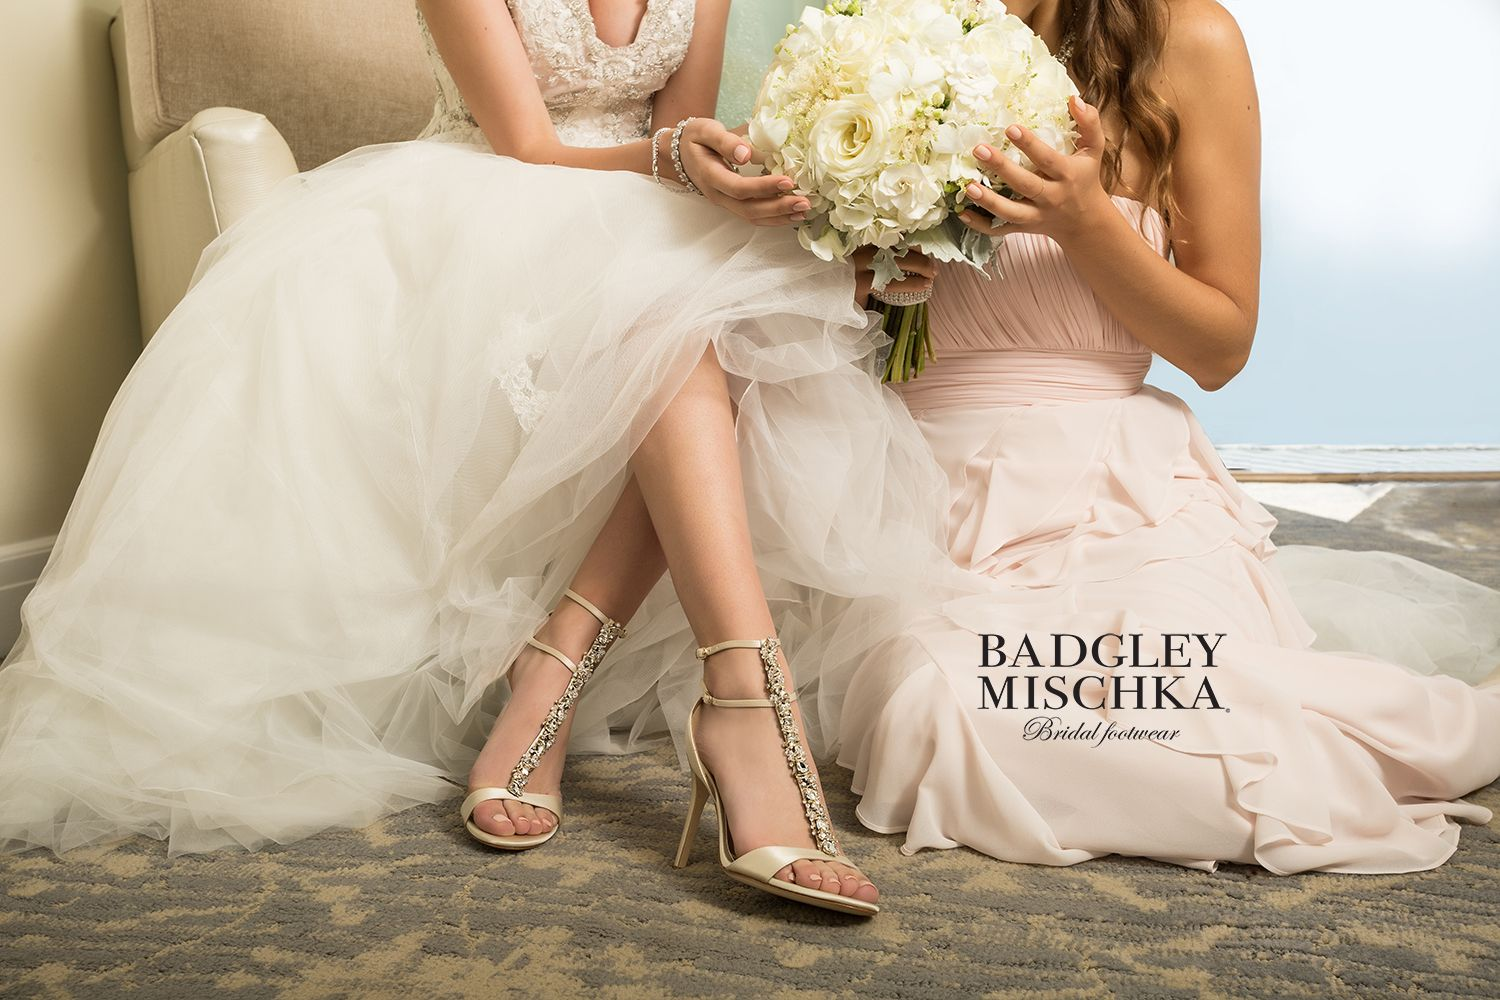 Badgley mischka wedding dress  Pin by wedding chicks on Everything Wedding  Pinterest  Badgley